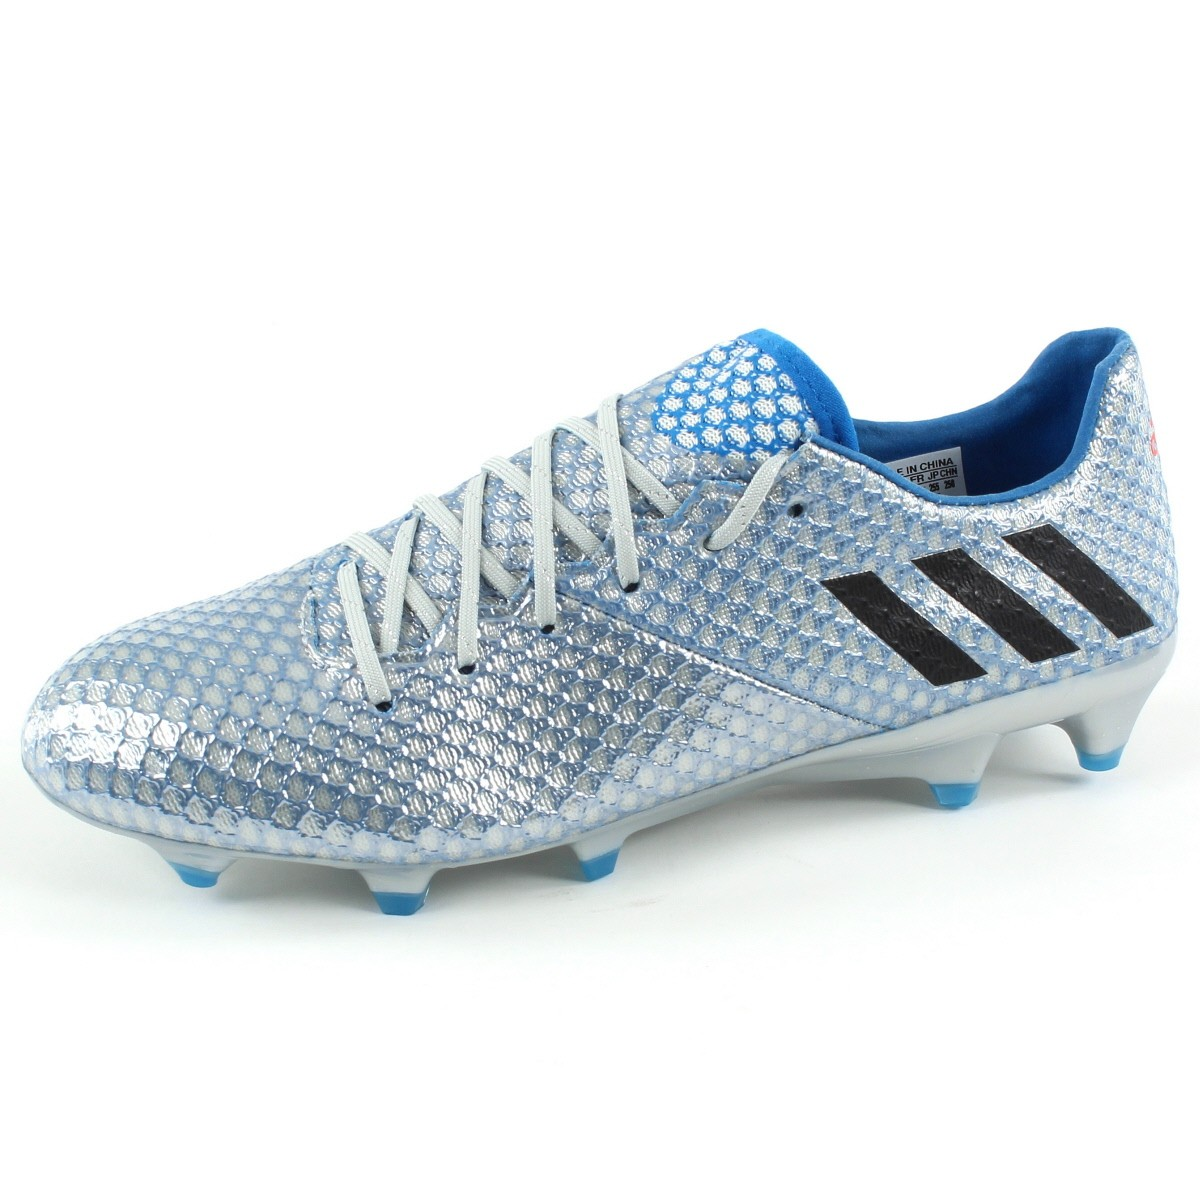 best authentic cfcaa 41ddc adidas performance MESSI 16.1 FG adidas performance MESSI 16.1 FG.  Découvrez la chaussure de football ...